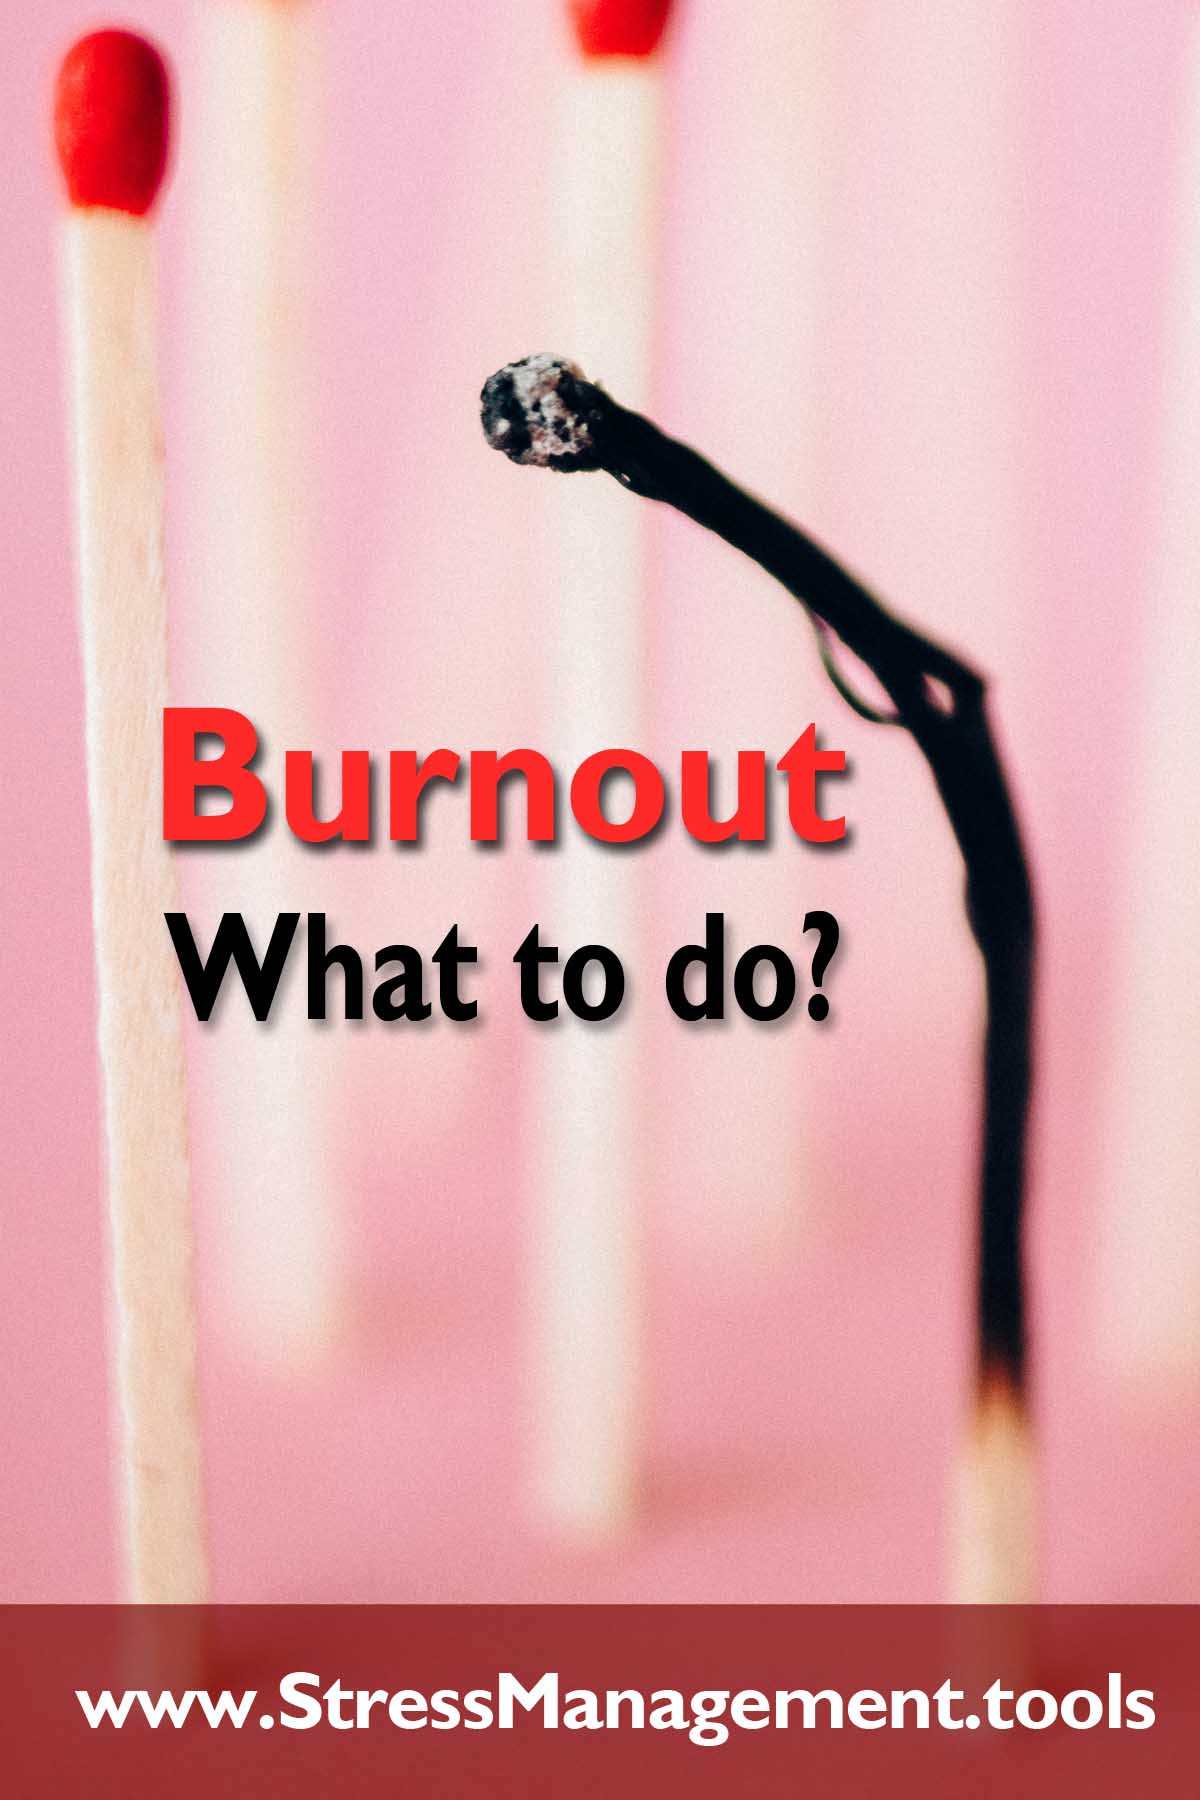 Burnout - What to do?